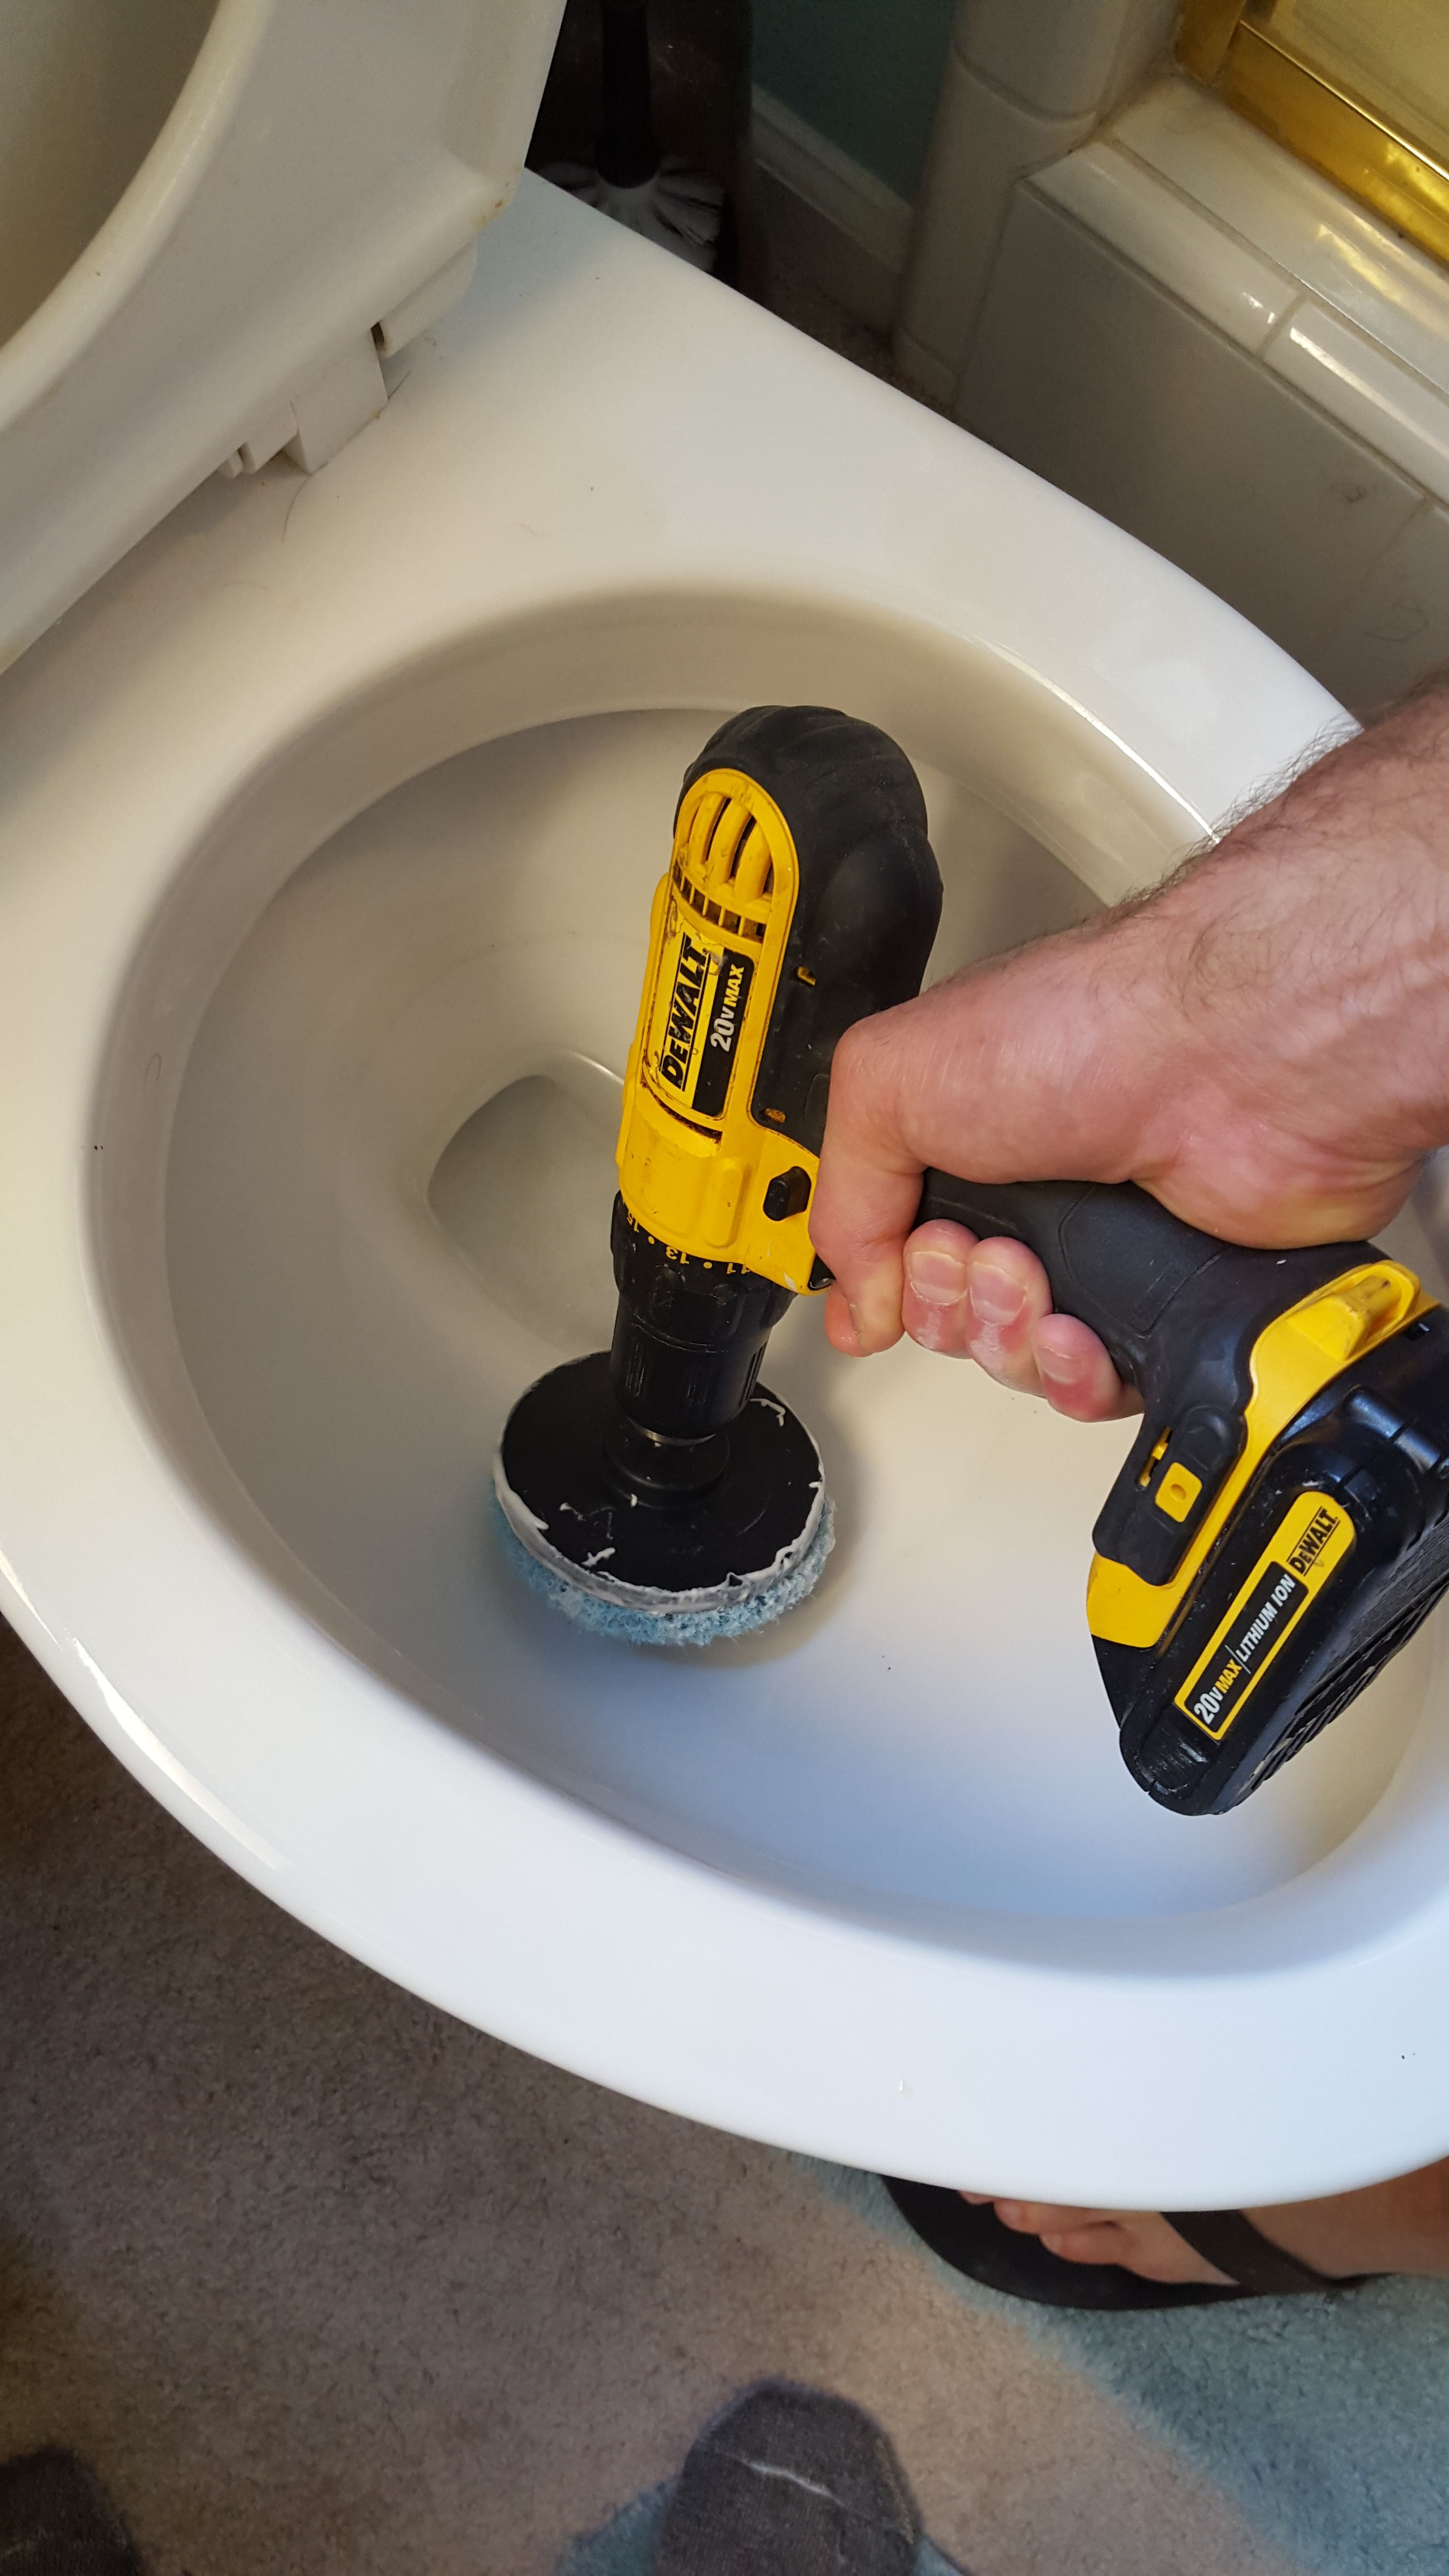 Fast way to clean toilets drill brush attachment toilet